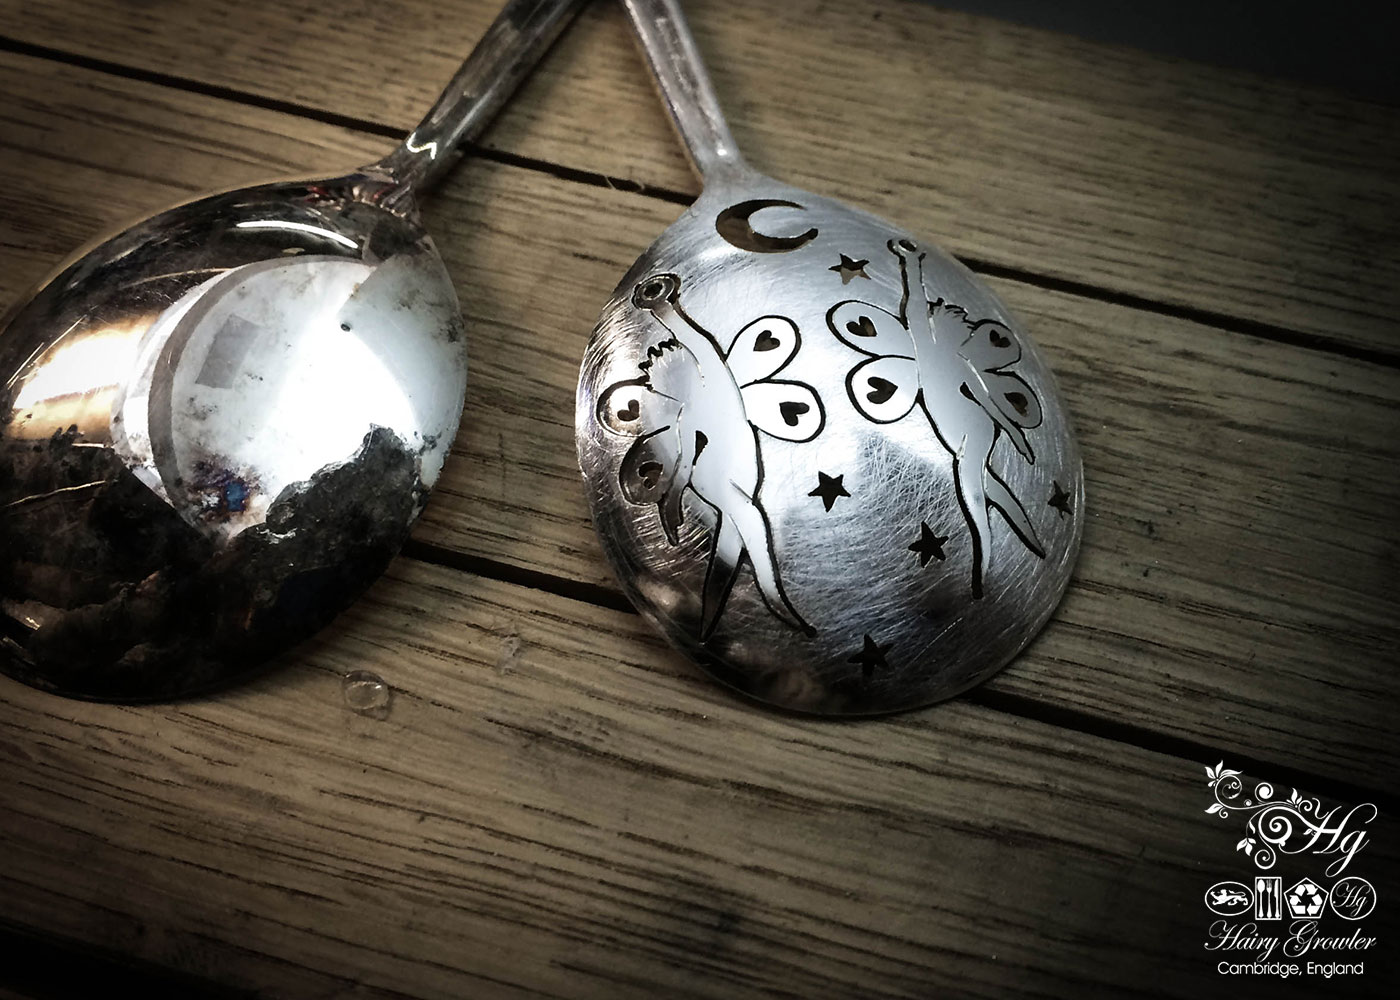 handcrafted and upcycled spoon fairies-and-stars earrings